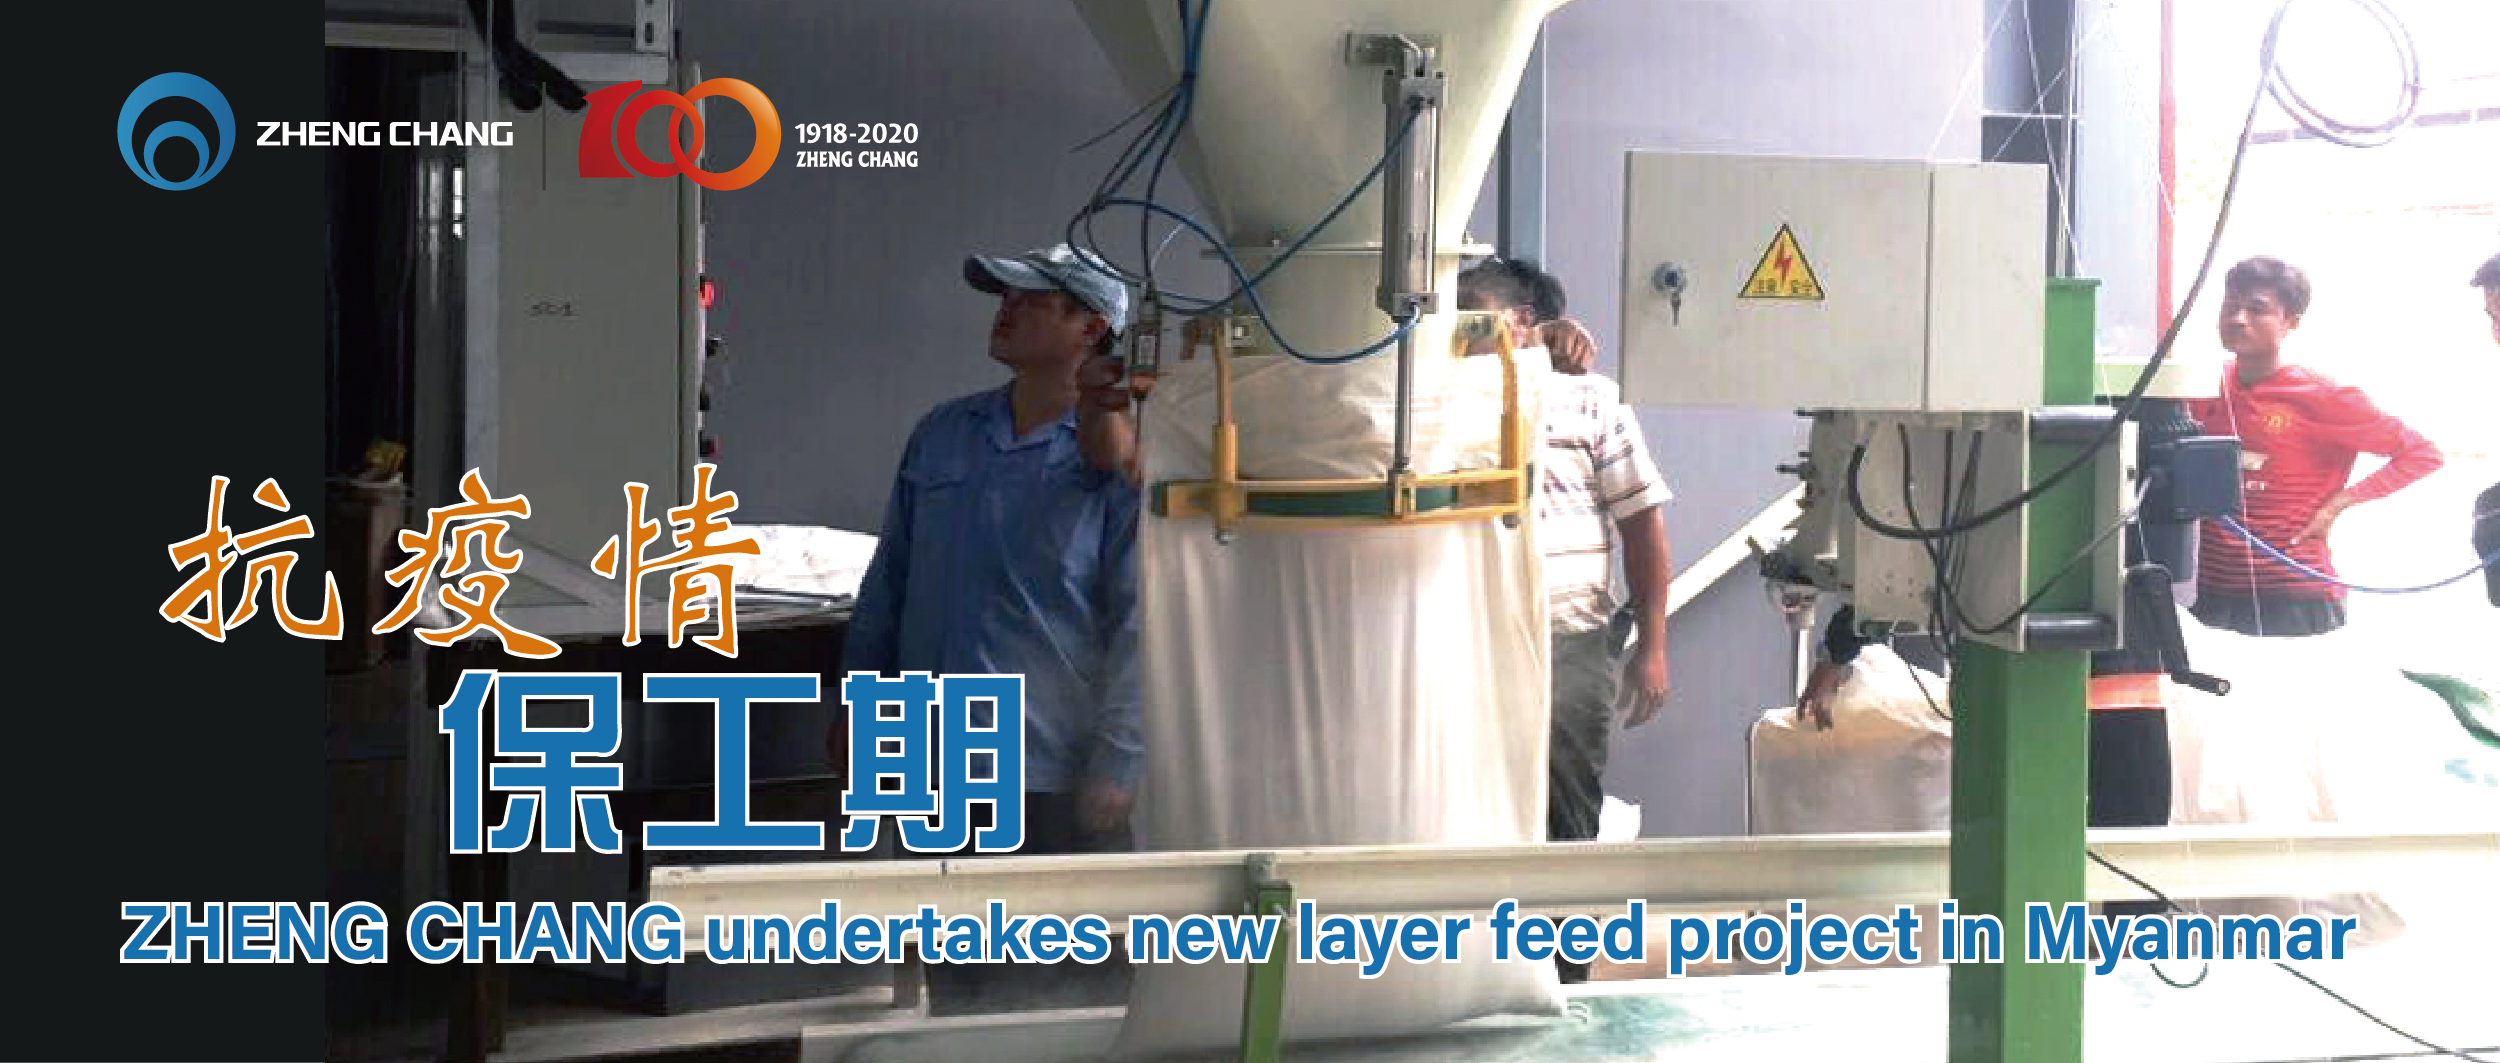 ZHENG CHANG Undertakes New Layer Feed Project in Myanmar